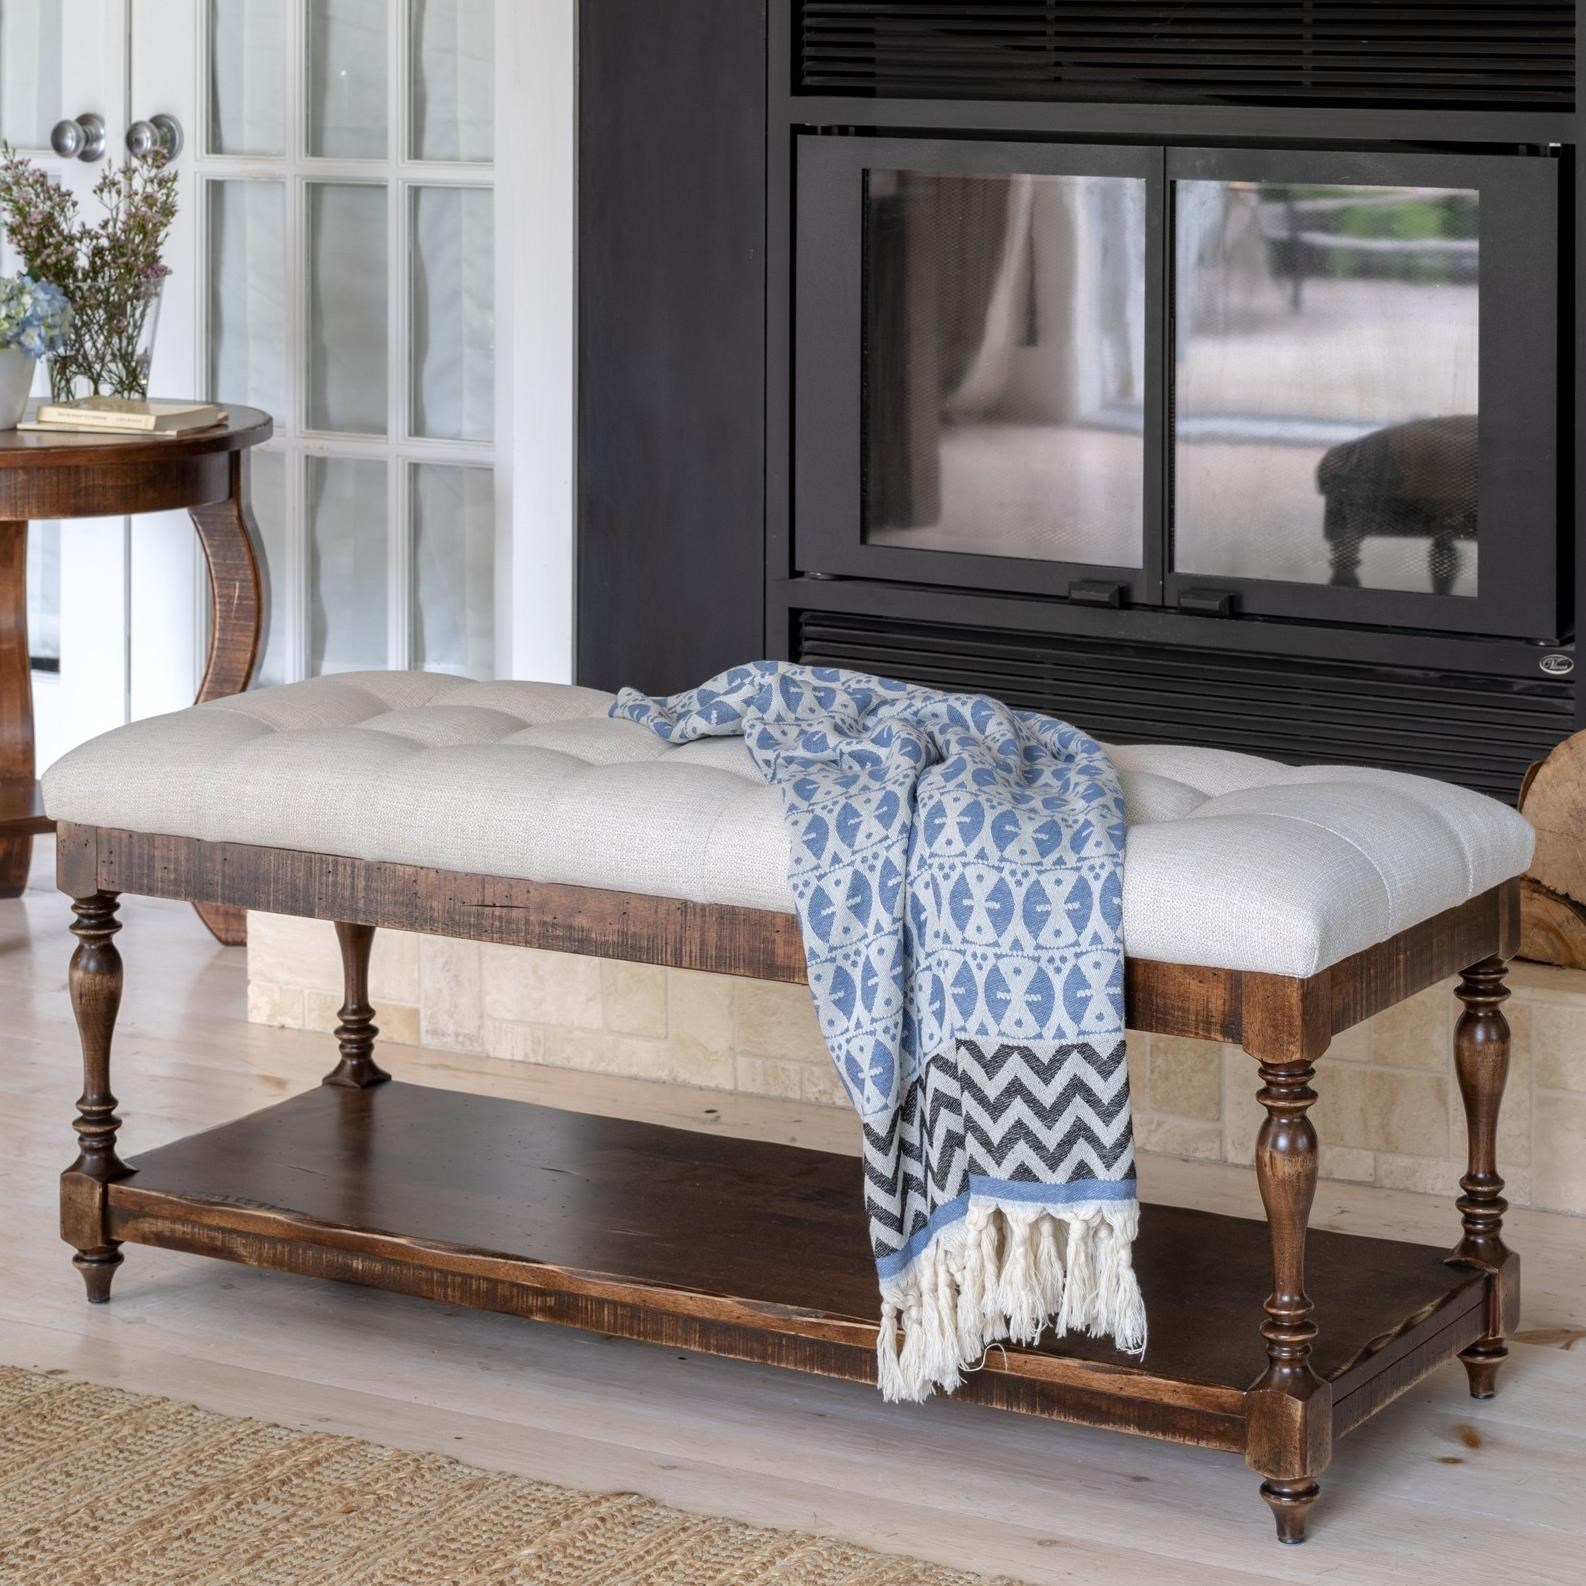 Champlain - Living Customizable Upholstered Bench by Canadel at Jordan's Home Furnishings